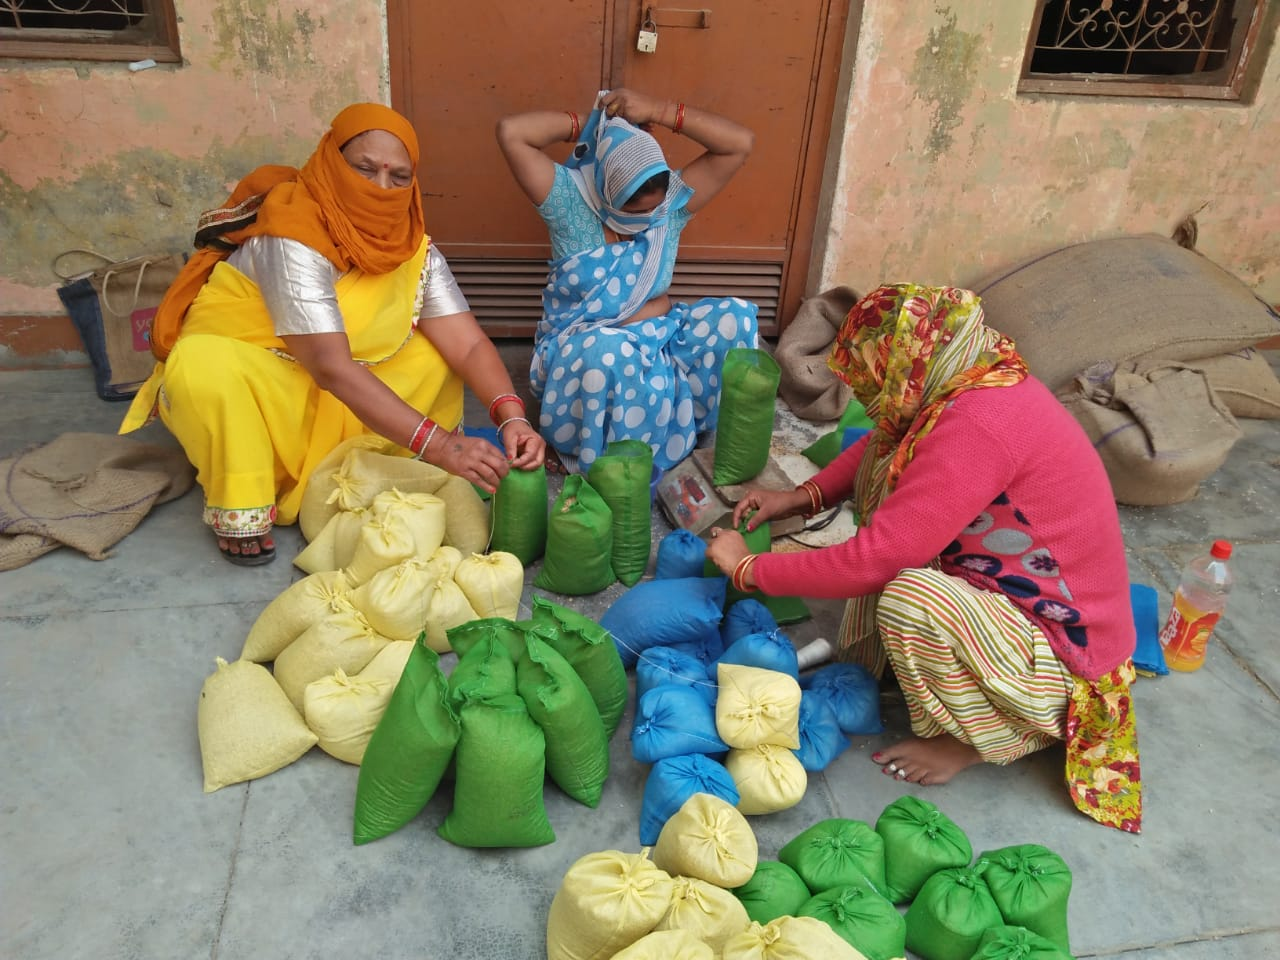 Uttar Pradesh Government Fights Malnutrition In State By Involving 68,000 Self-Help Women Groups, Gives Them The Duty Of Providing Take Home Ration